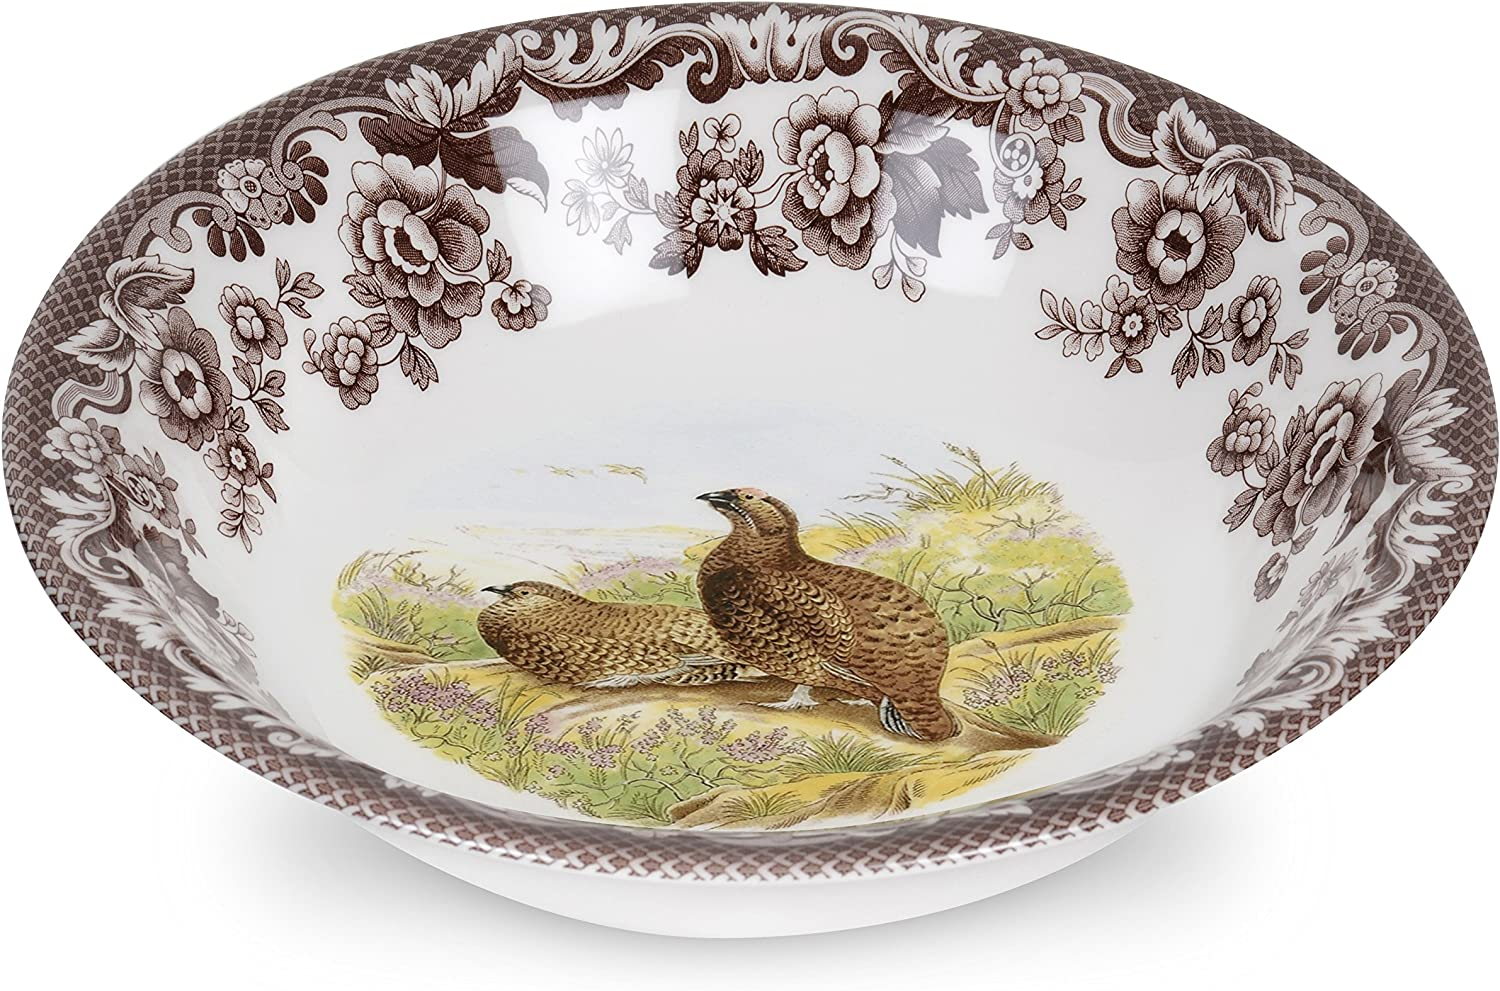 sold out Max 57% OFF Spode Woodland Ascot Cereal Red Bowl Grouse